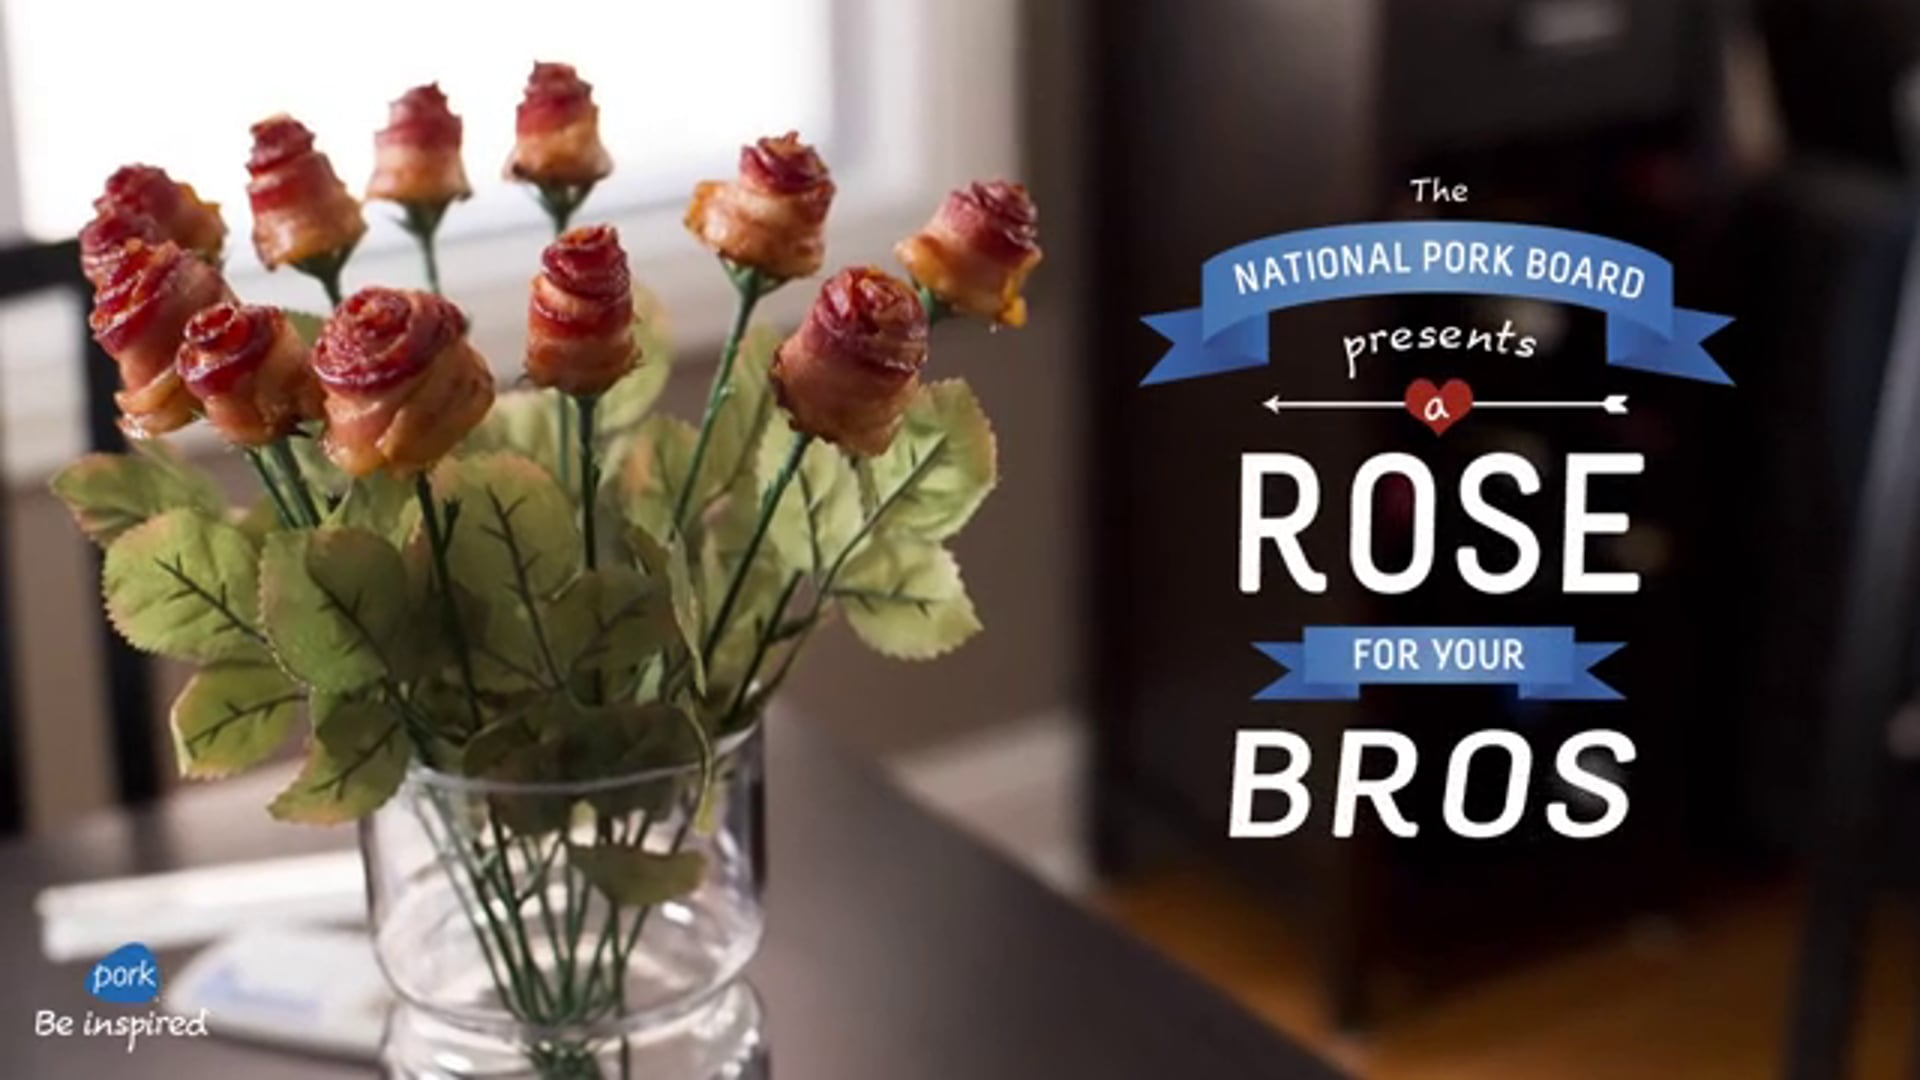 Social Campaign - National Pork Board: A Rose for Your Bros